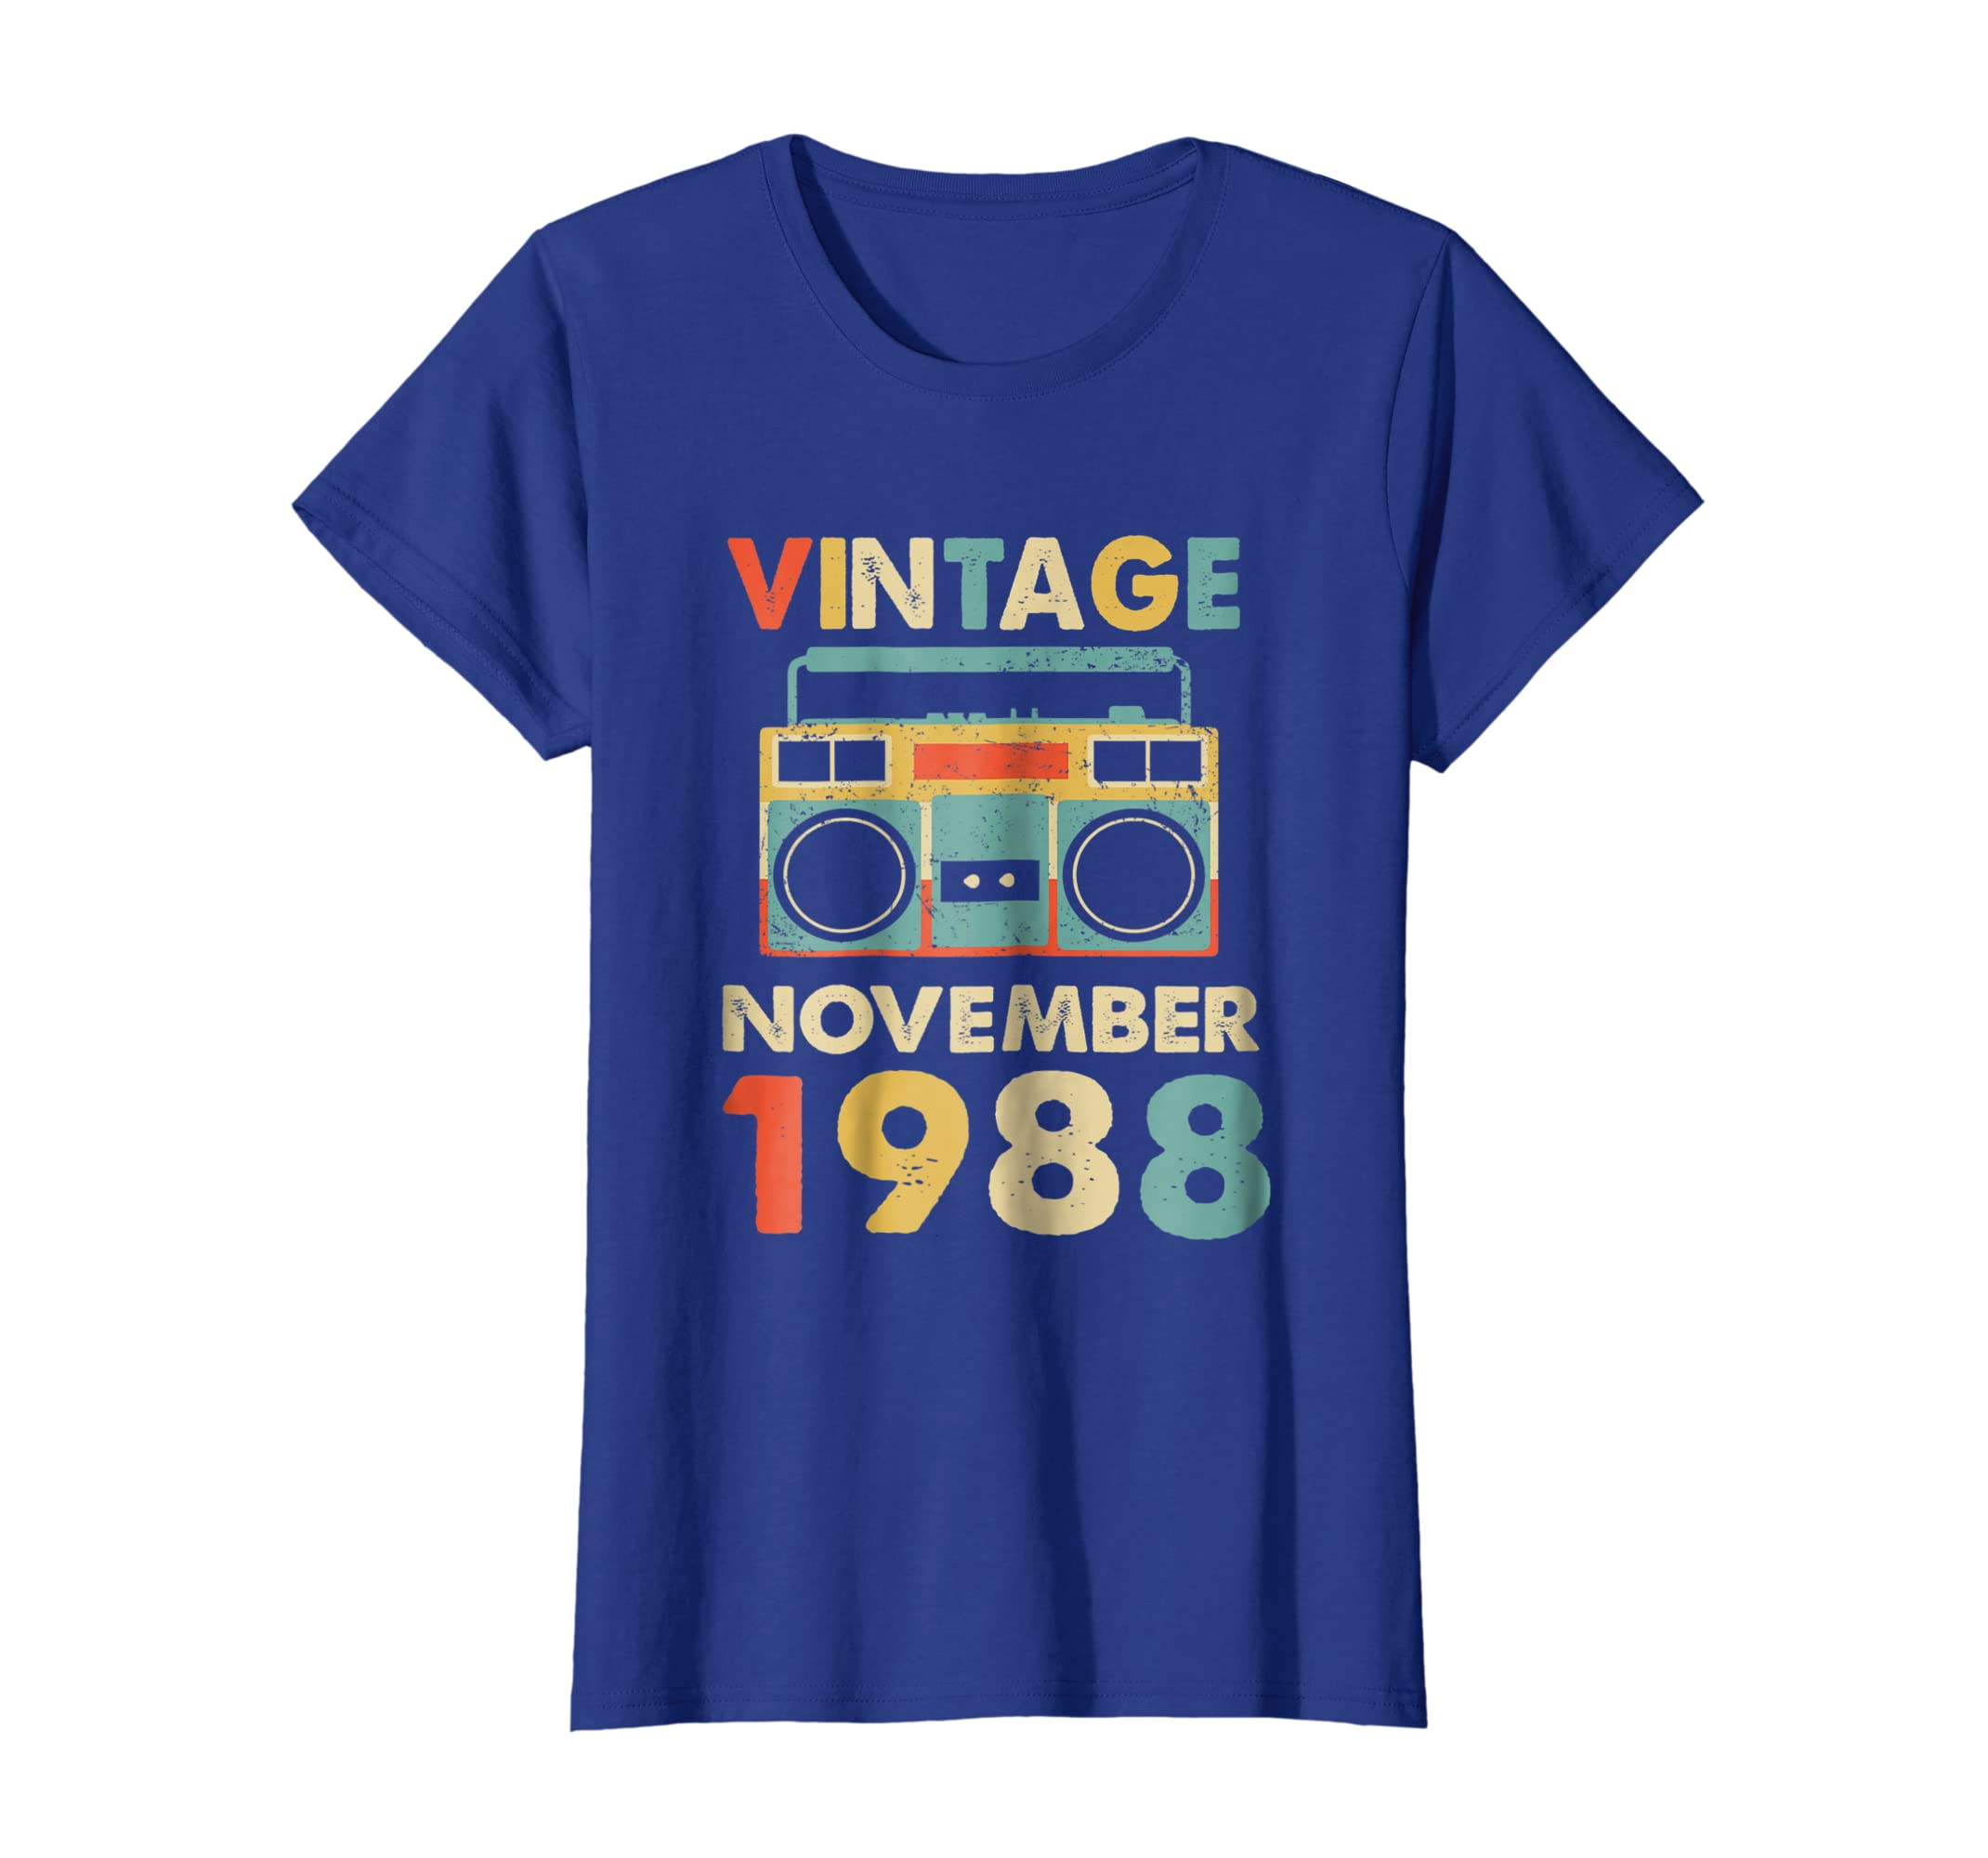 b41dbcf91e5 Amazon.com  Vintage November 1988 Tshirt Retro 30th Birthday Gifts  Clothing